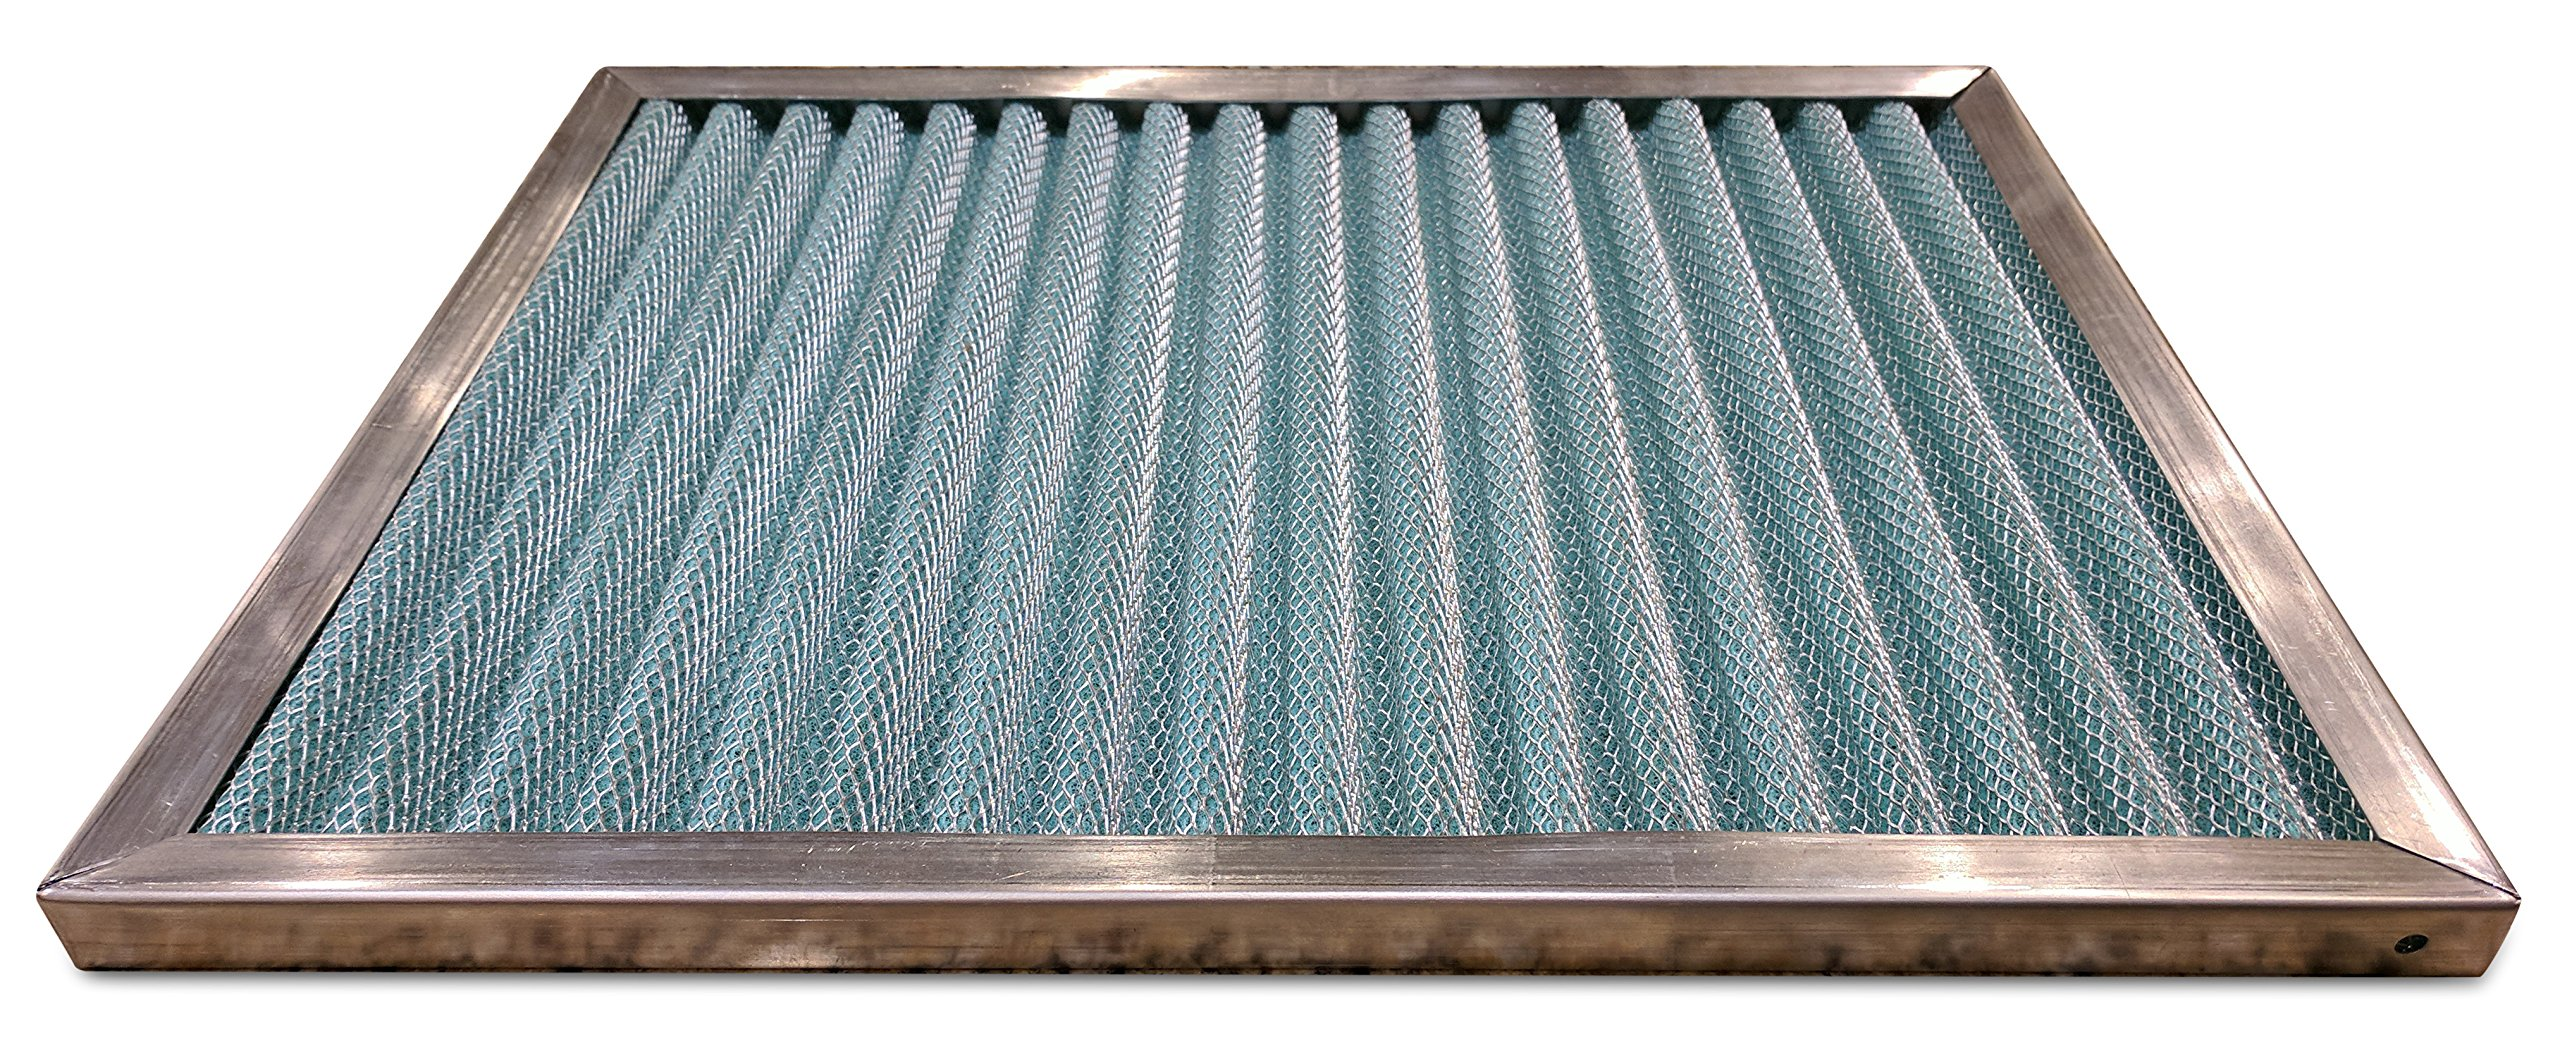 Permanent Air Filter Replacement | Permafoam | Washable | HVAC Conditioner Purifier | Purify Allergens for Cleaner, Healthier Home Environment | Easy to Install | Made in The USA (16x20x1) by Trophy Air